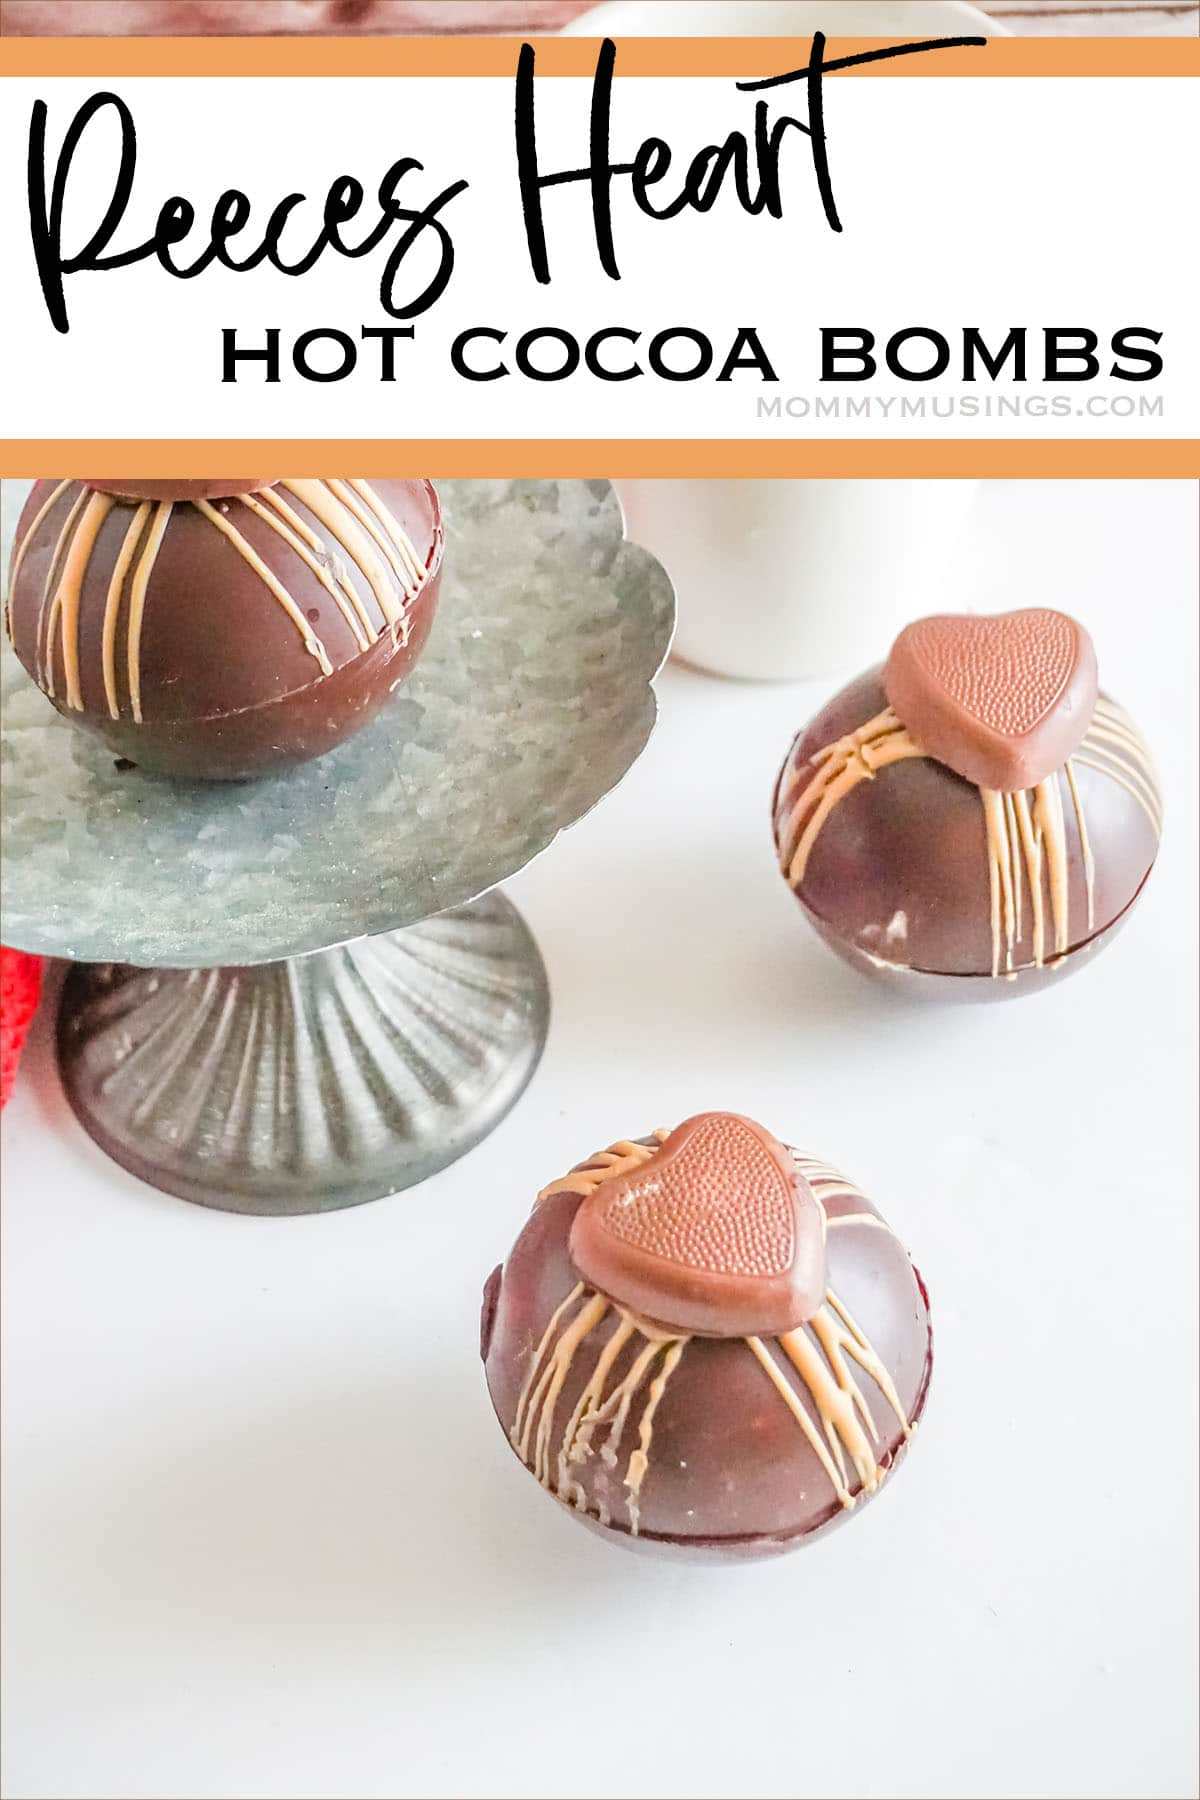 reeces hot cocoa bombs with text which reads reeces heart hot cocoa bombs